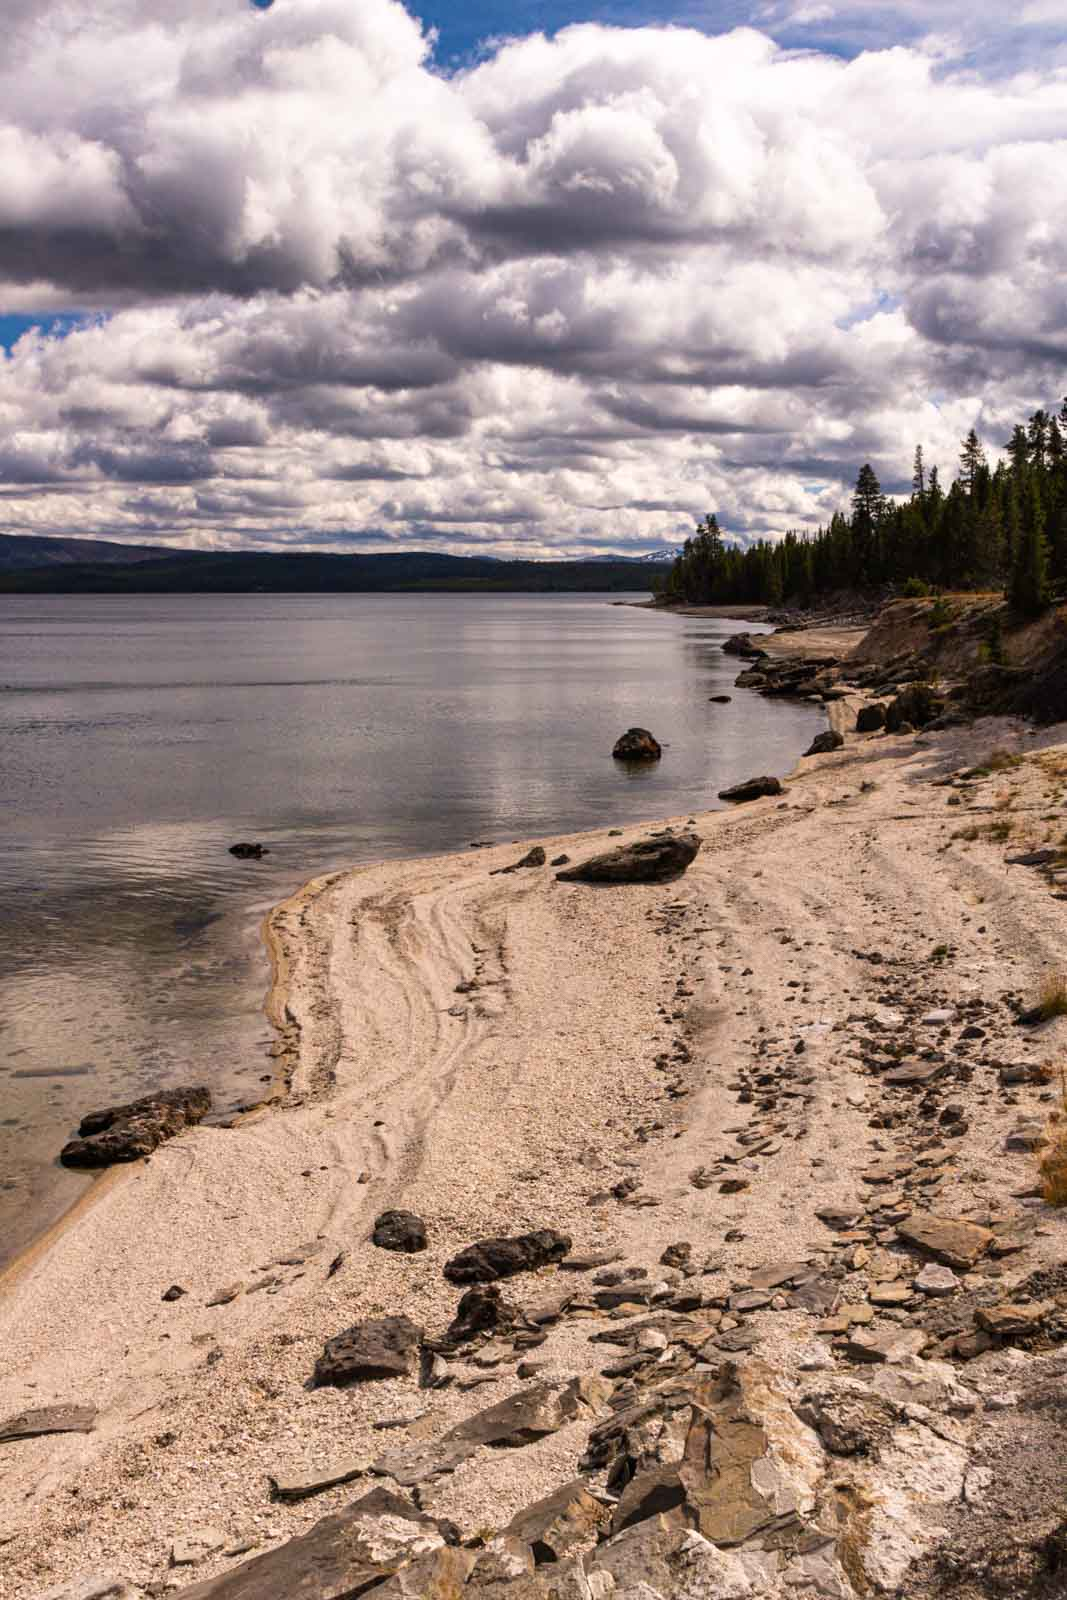 West Thumb Geyser Basin is another must for any Yellowstone itinerary